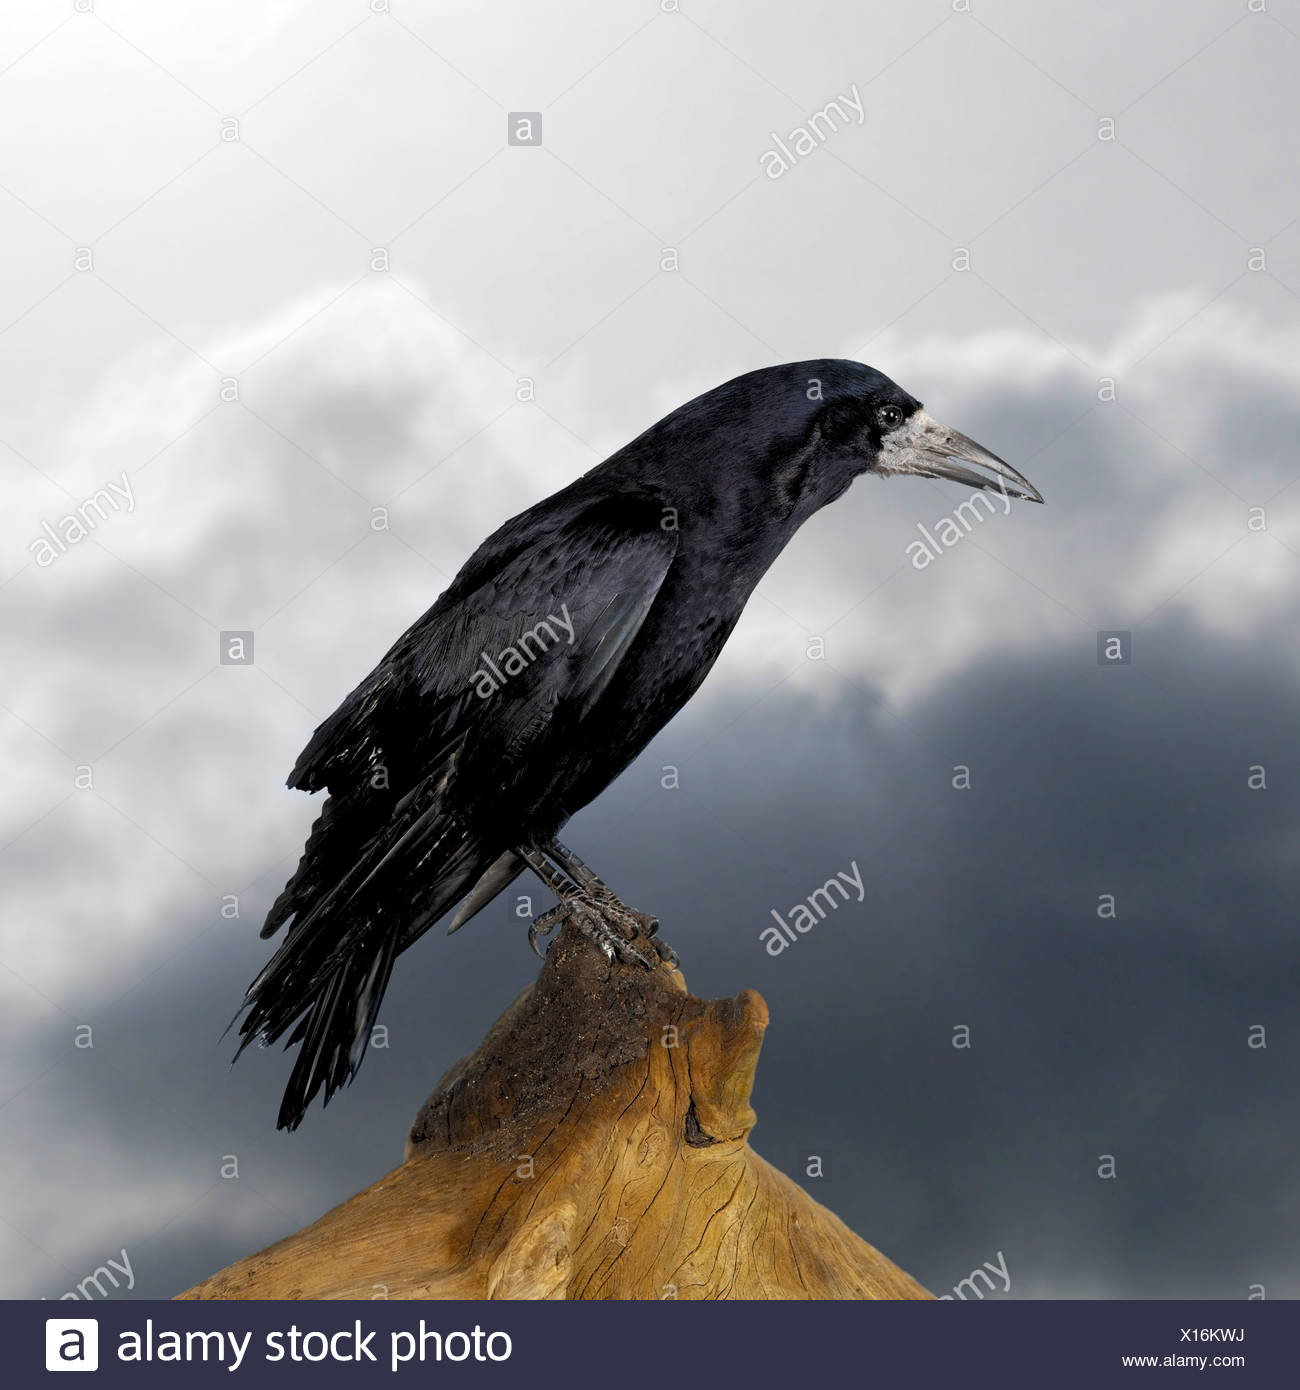 Rook perched on tree stump - Stock Image